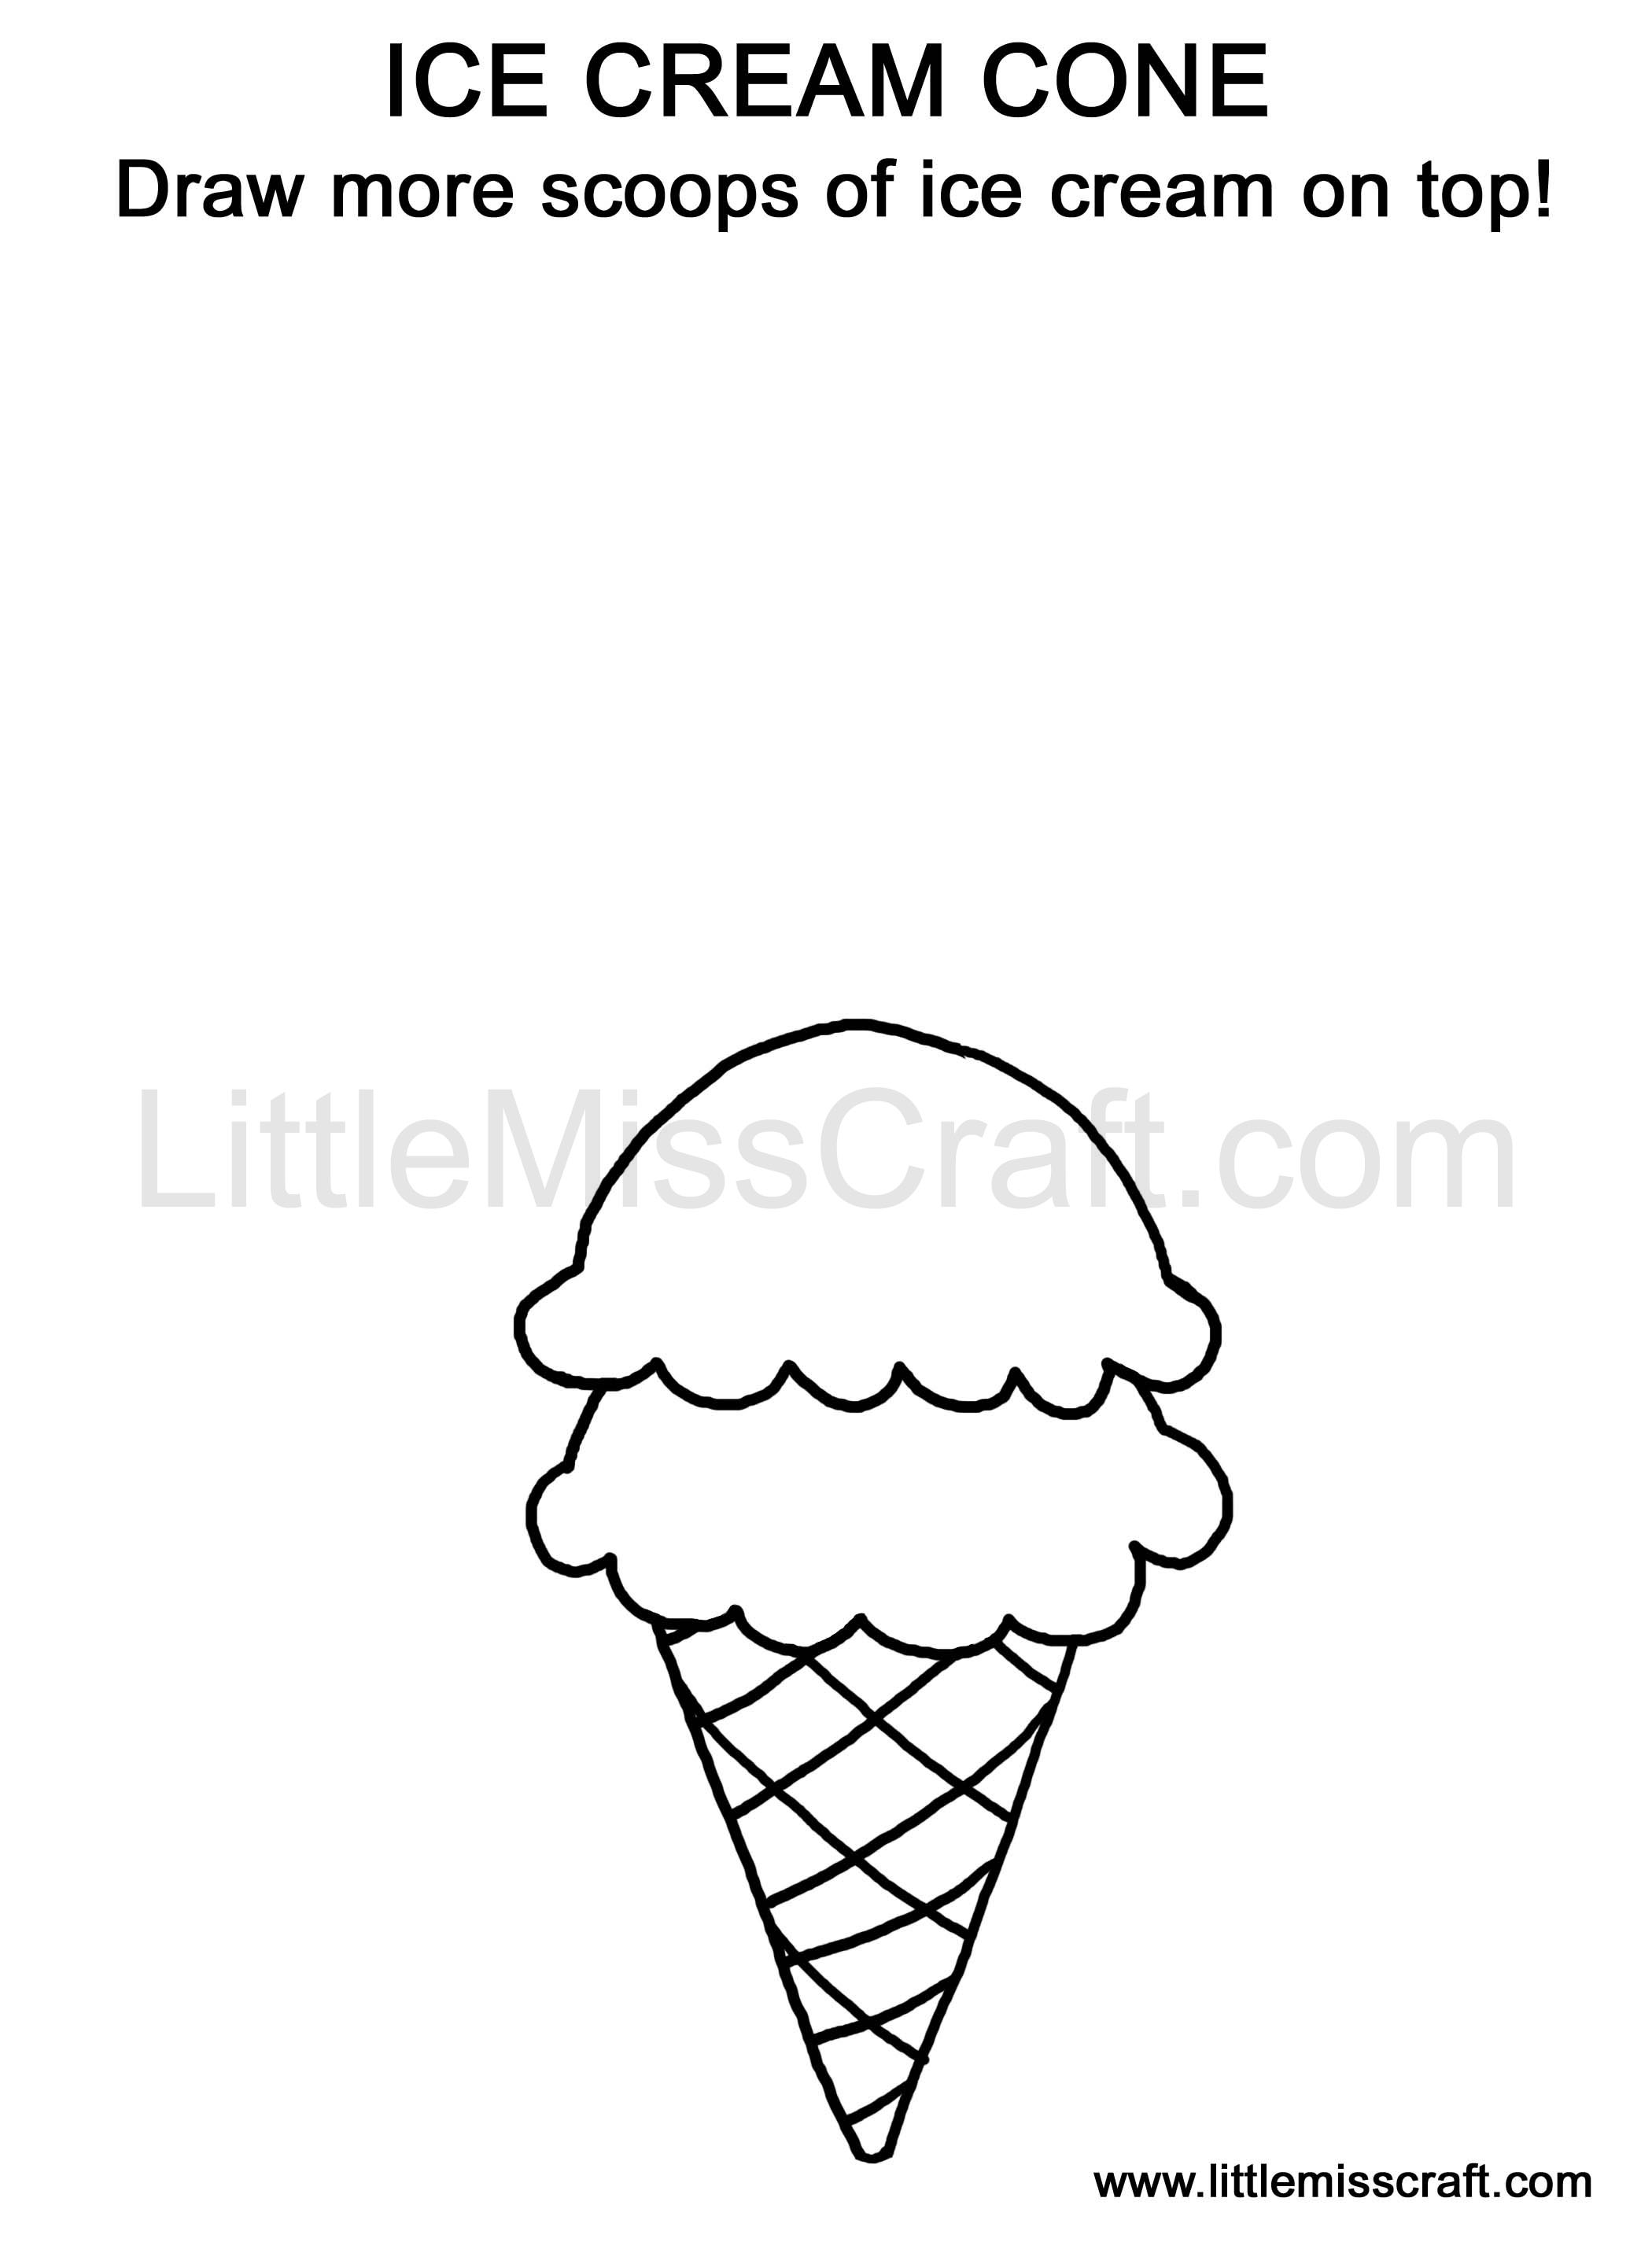 Coloring pictures of ice cream cones - Sweets Ice Cream Cone Doodle Coloring Page